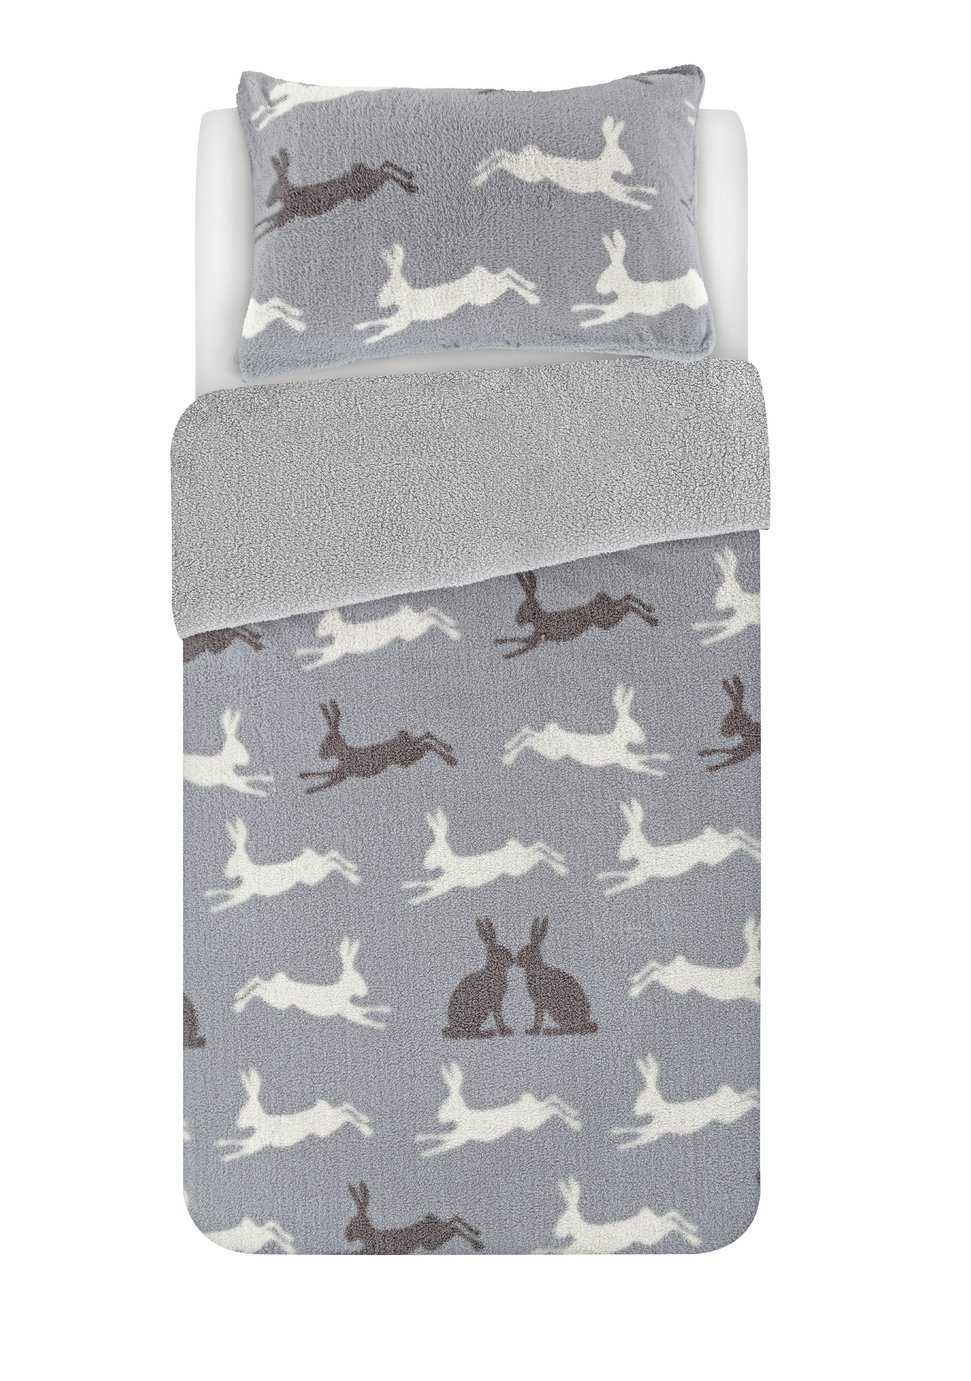 Argos Home Fleece Hare Bedding Set - Single